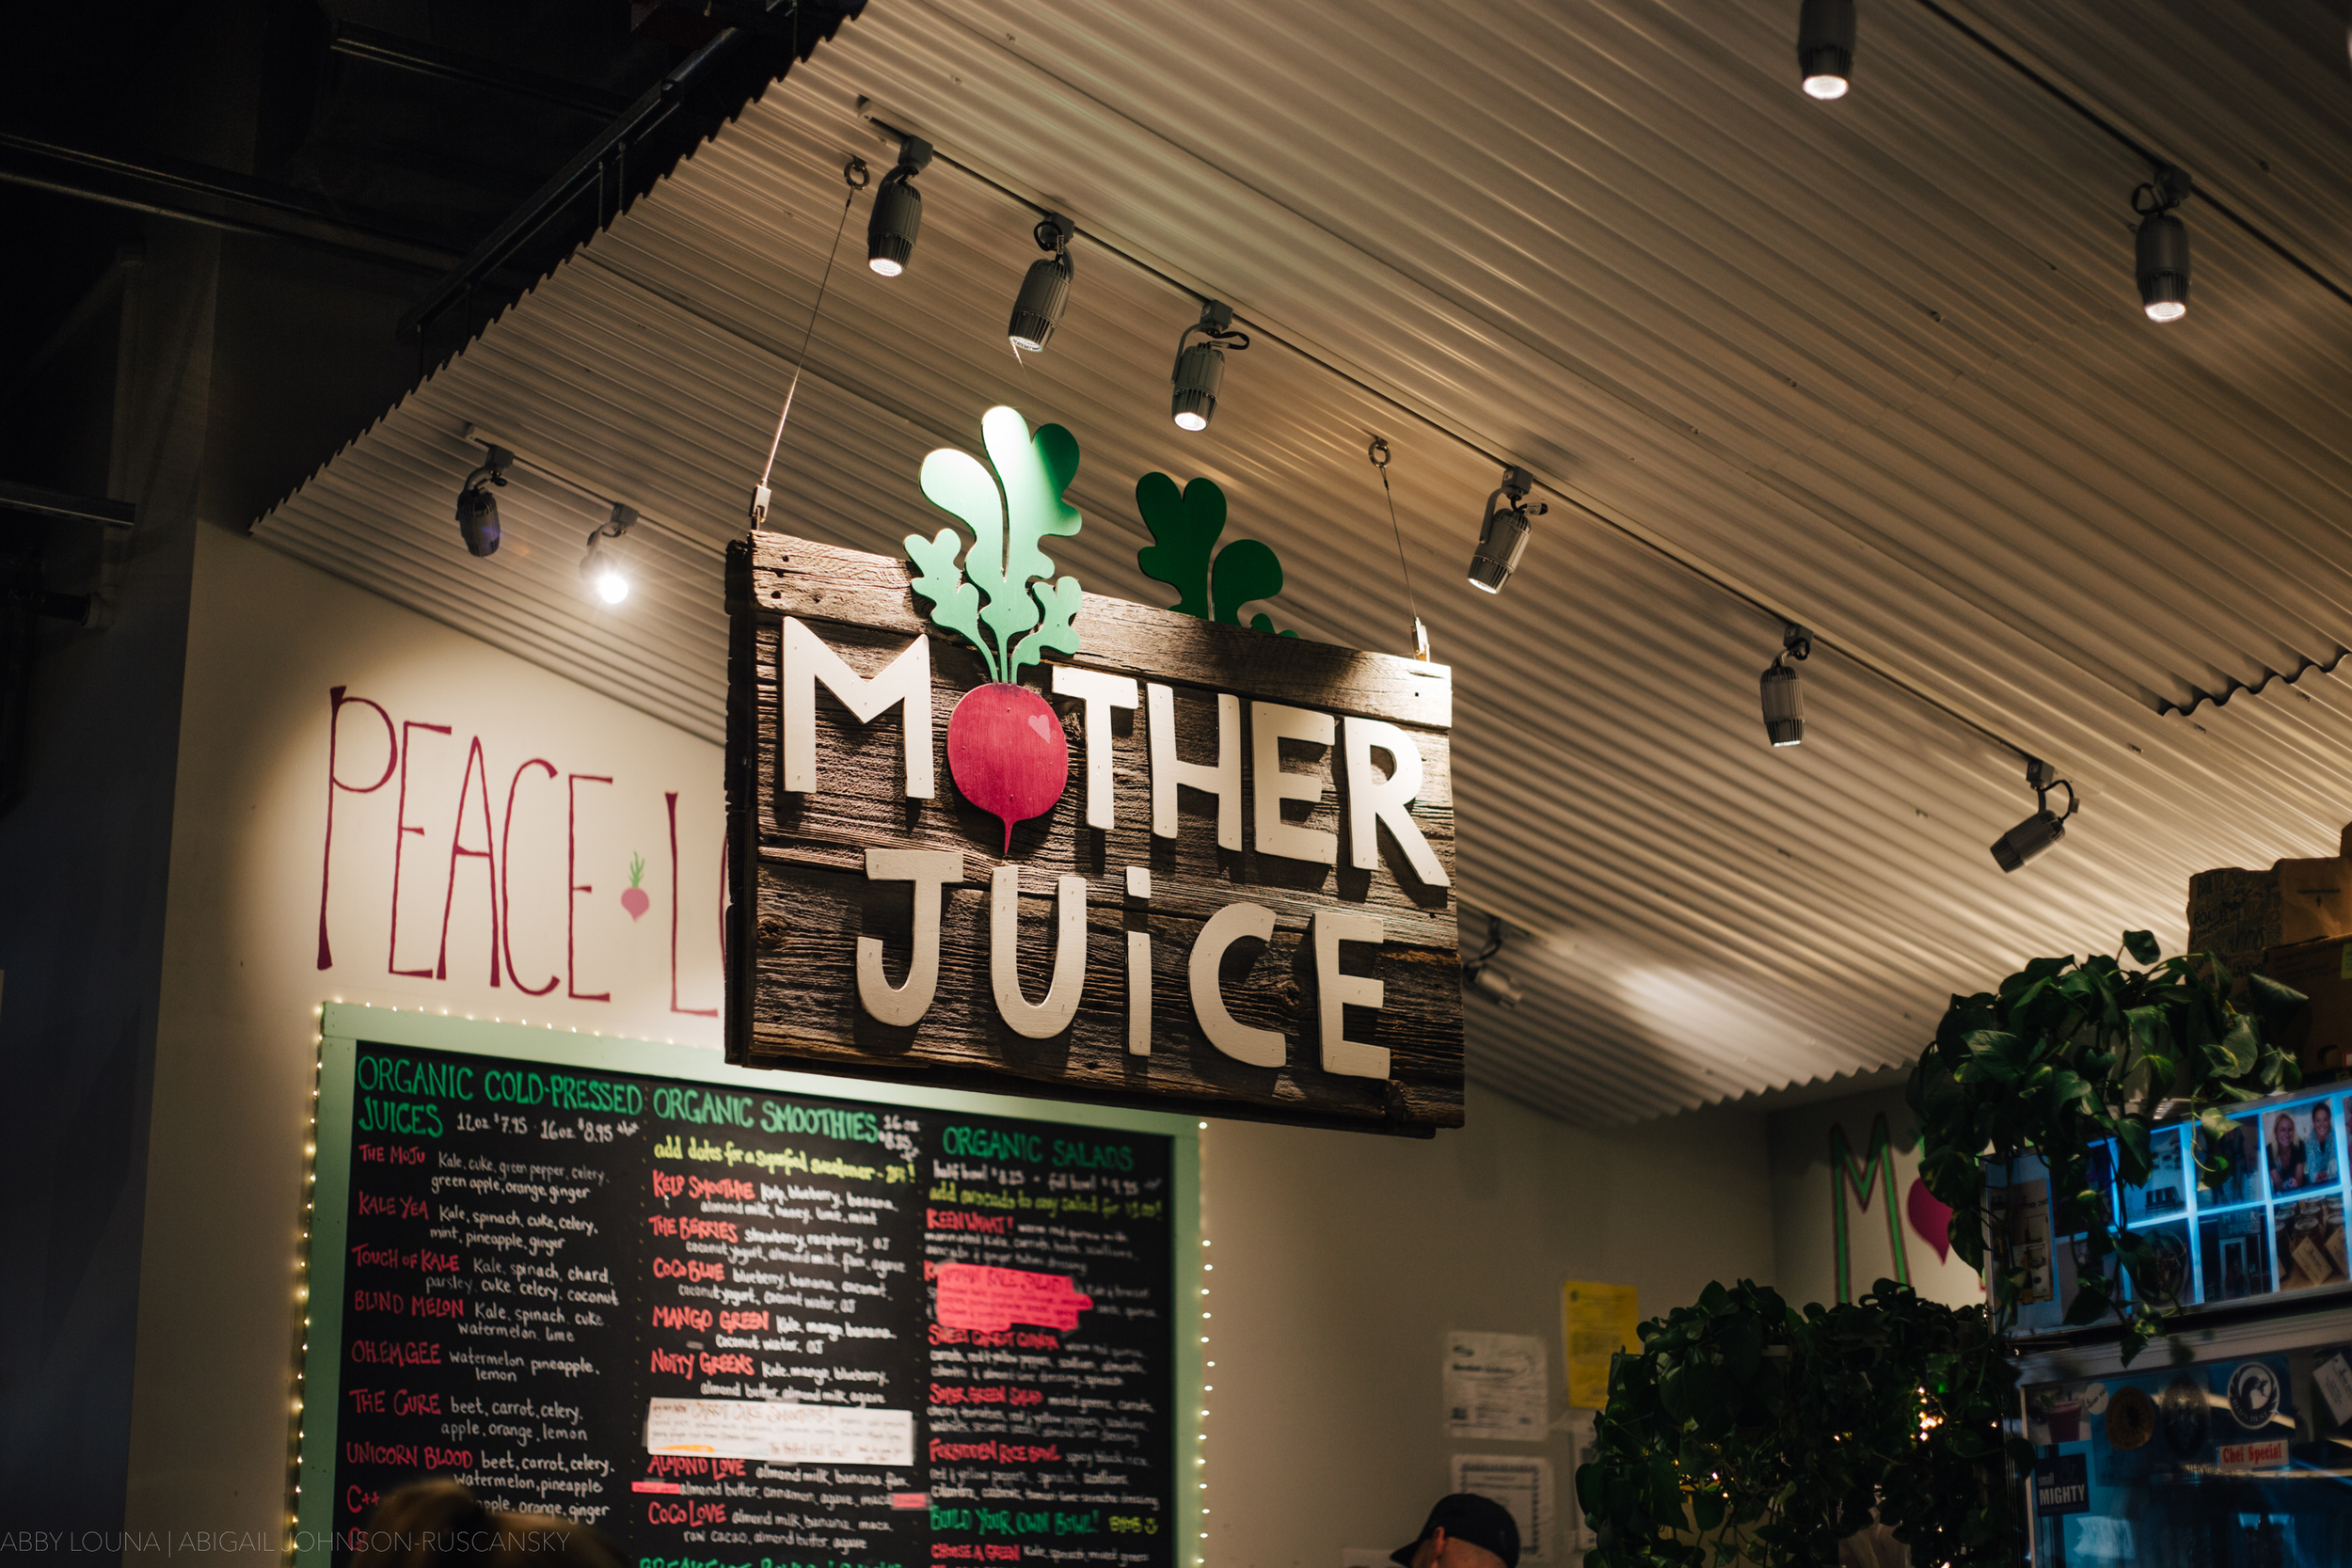 Our first stop was at the Boston Public Market for a Kale smoothie. Good, but not as good as the Maine Squeeze!